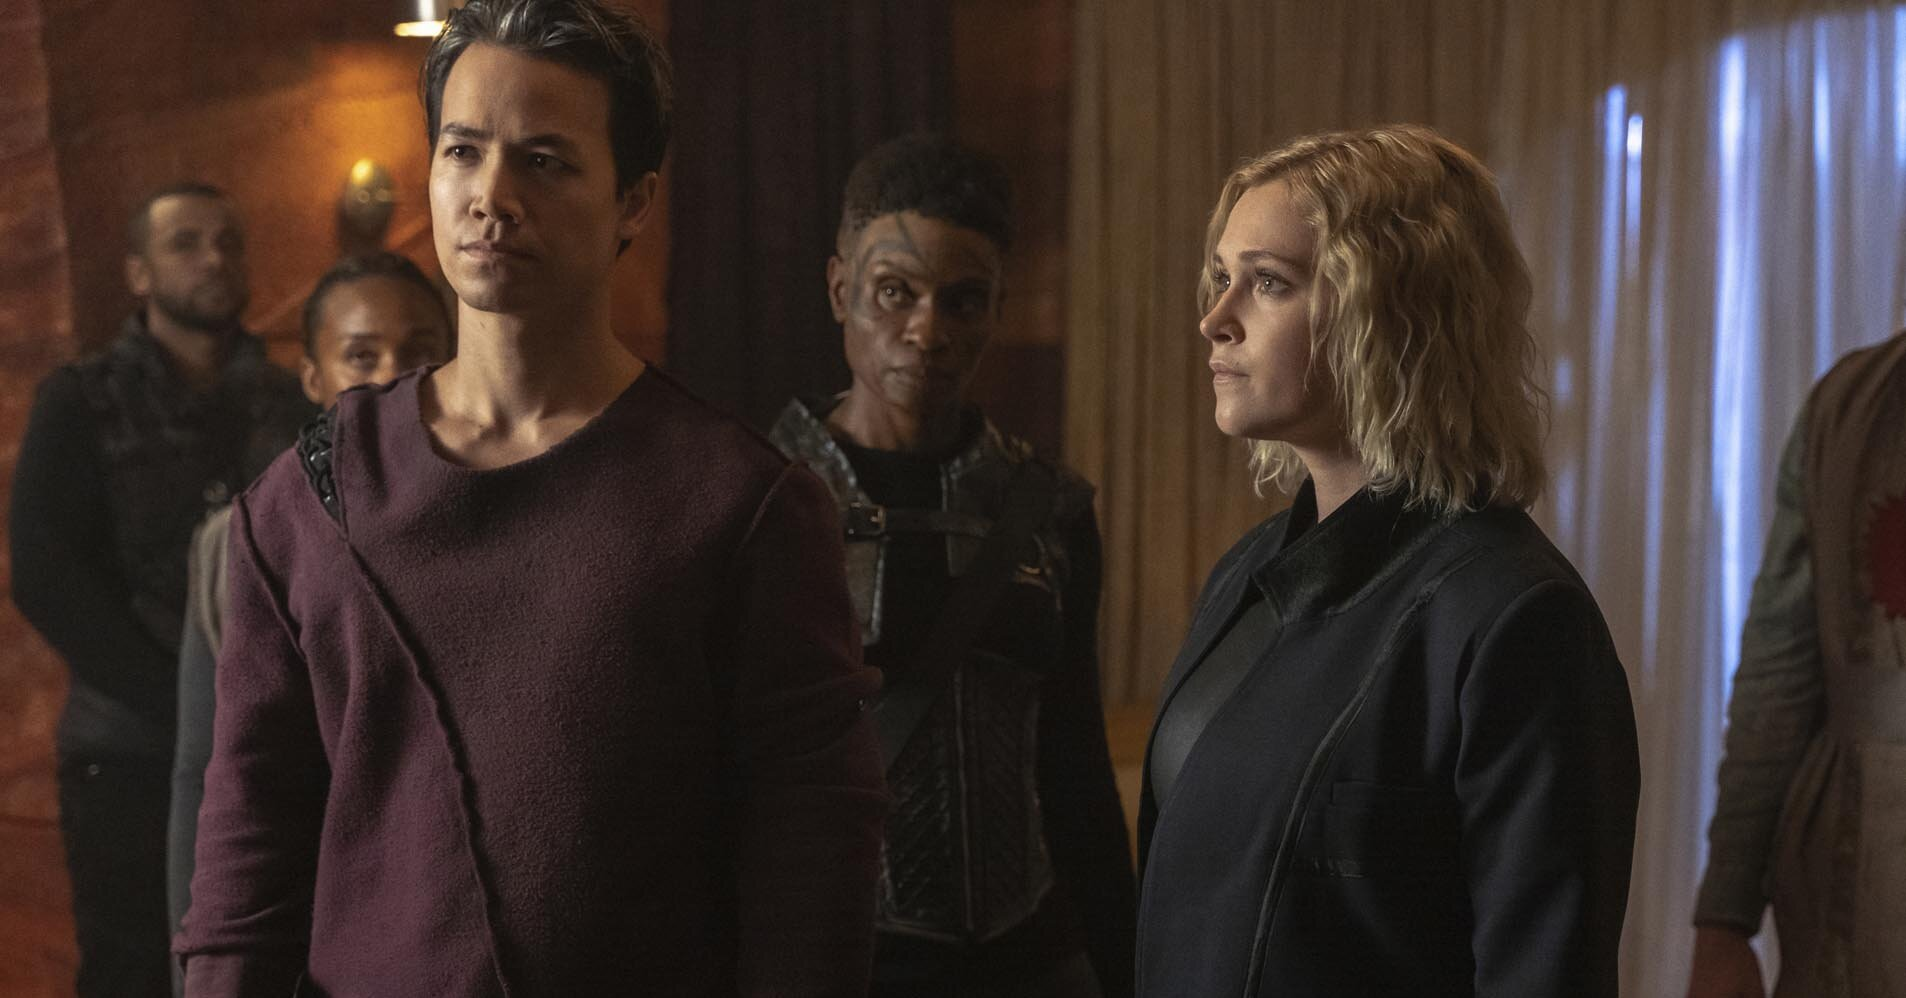 The 100 showrunner gives update on potential prequel that's 'pivotal' to final season